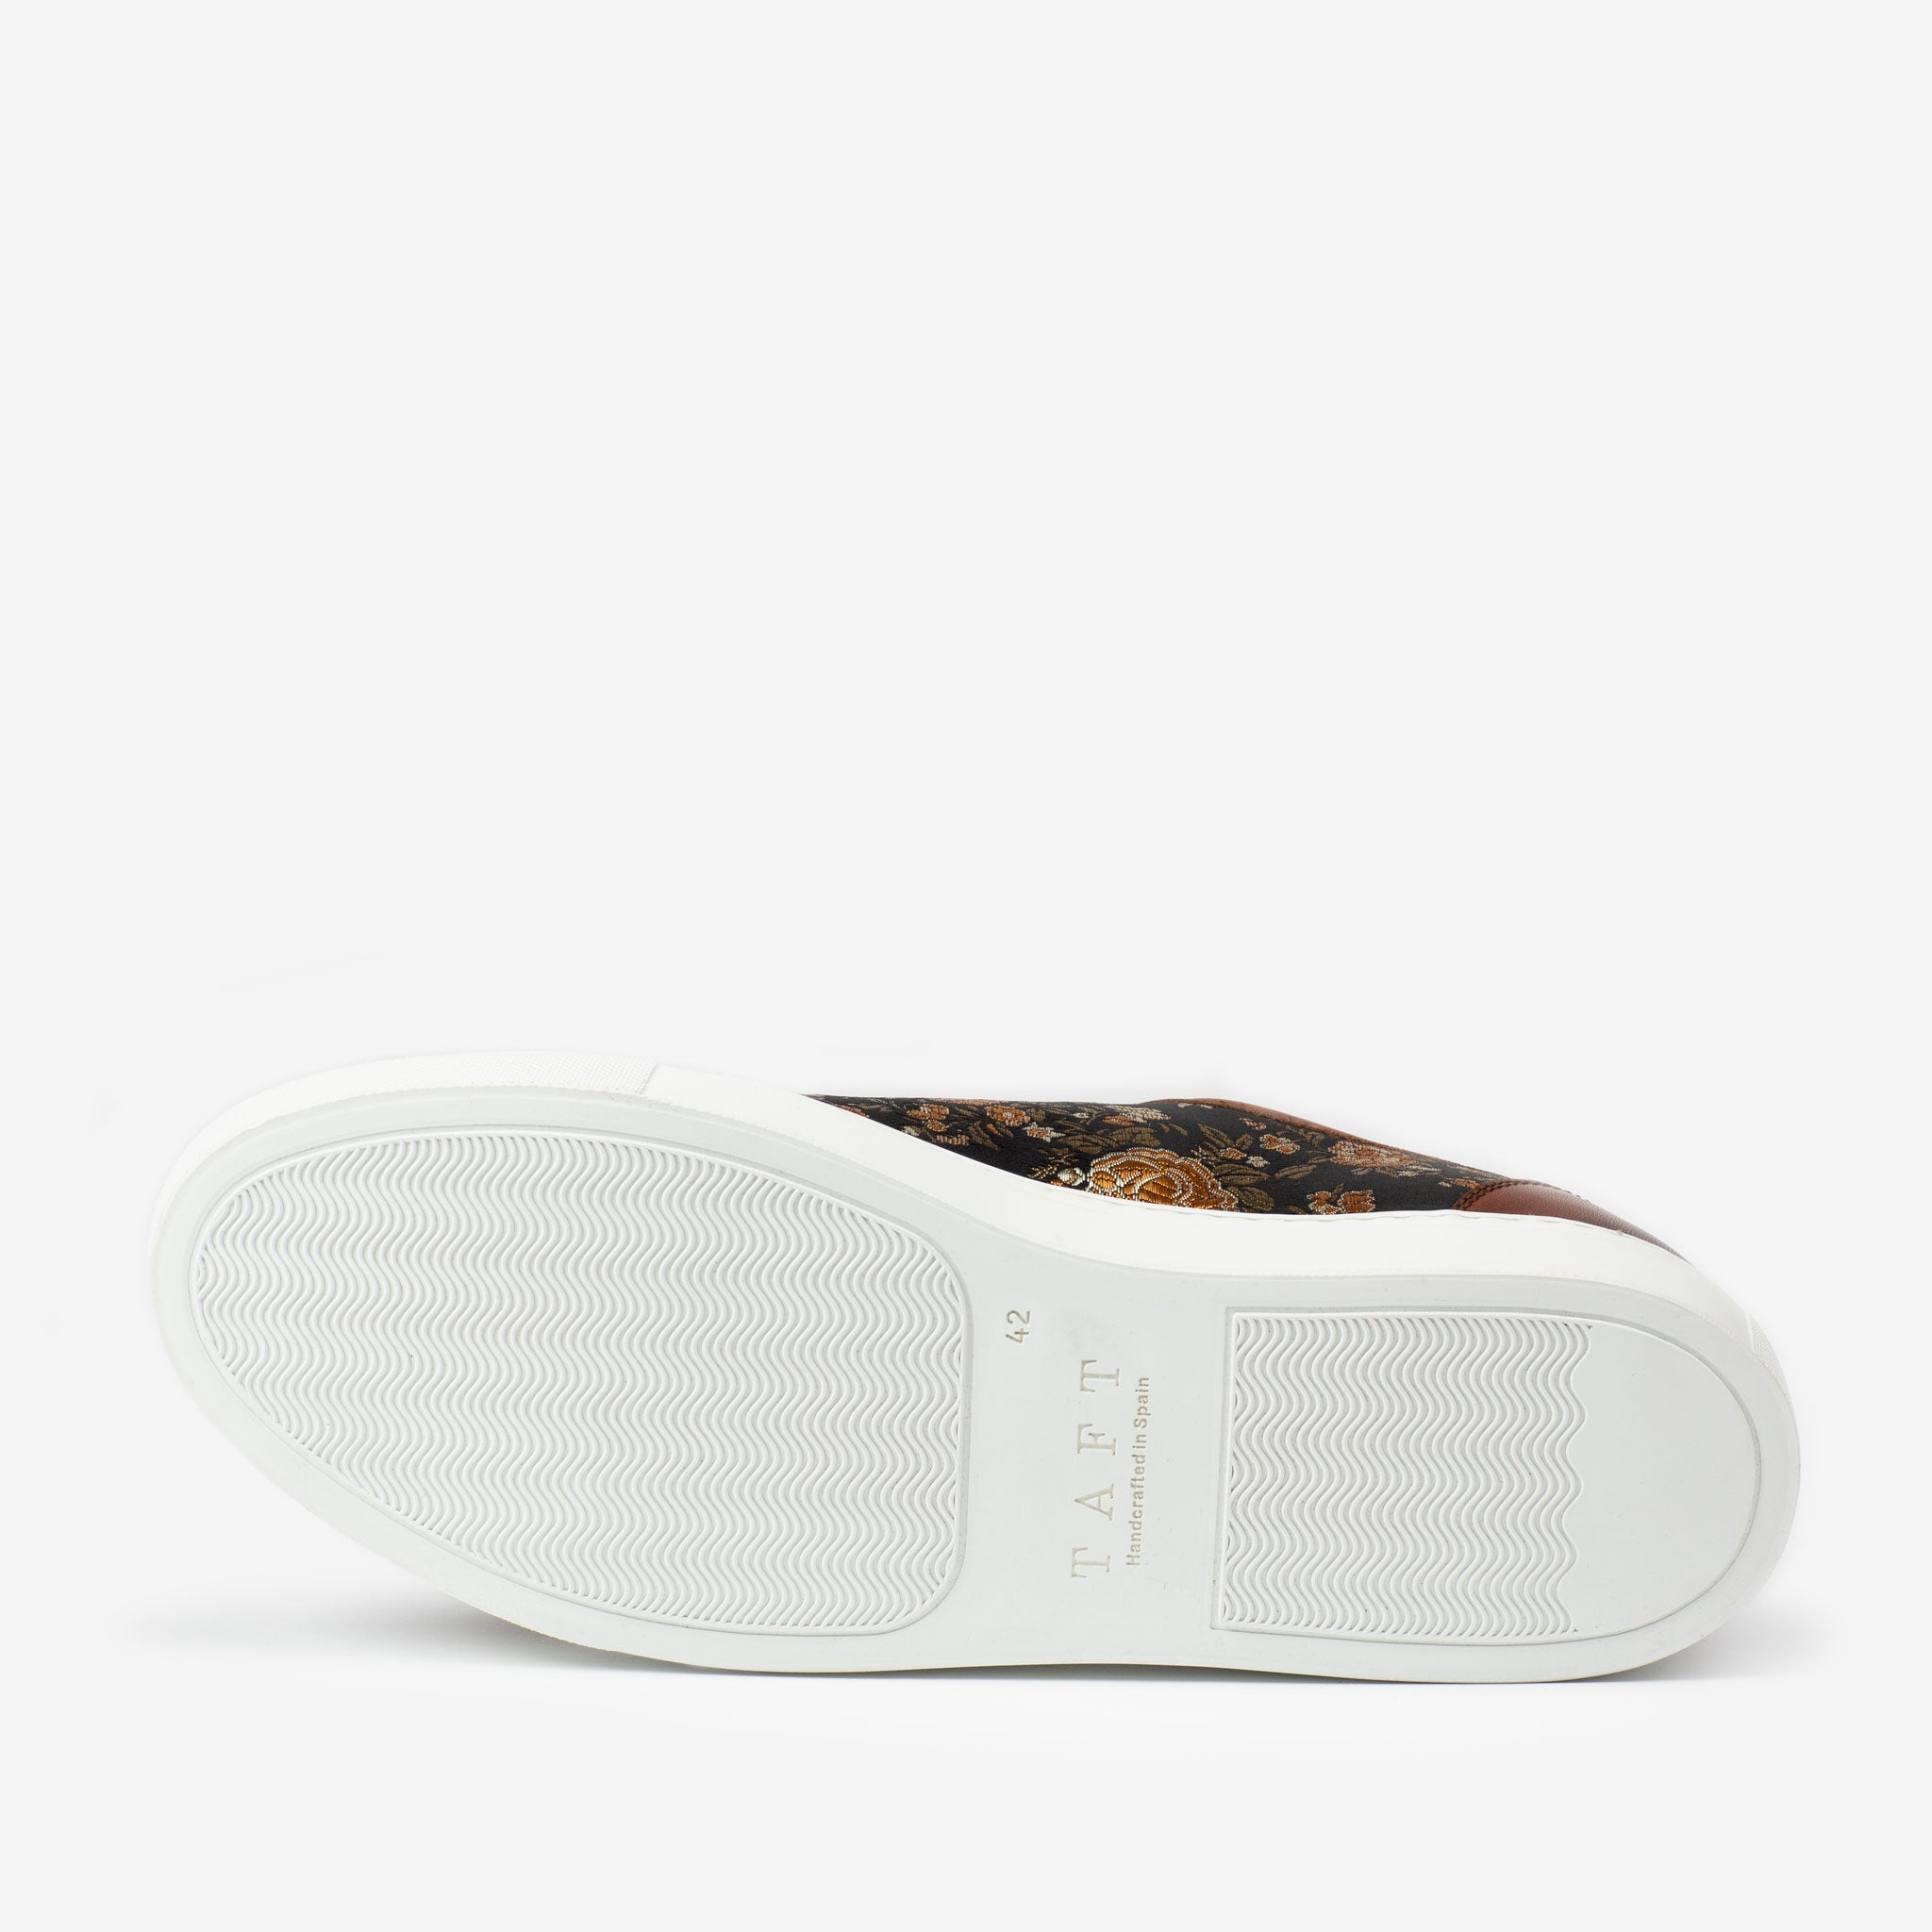 Sole of Jack Sneaker in Eden